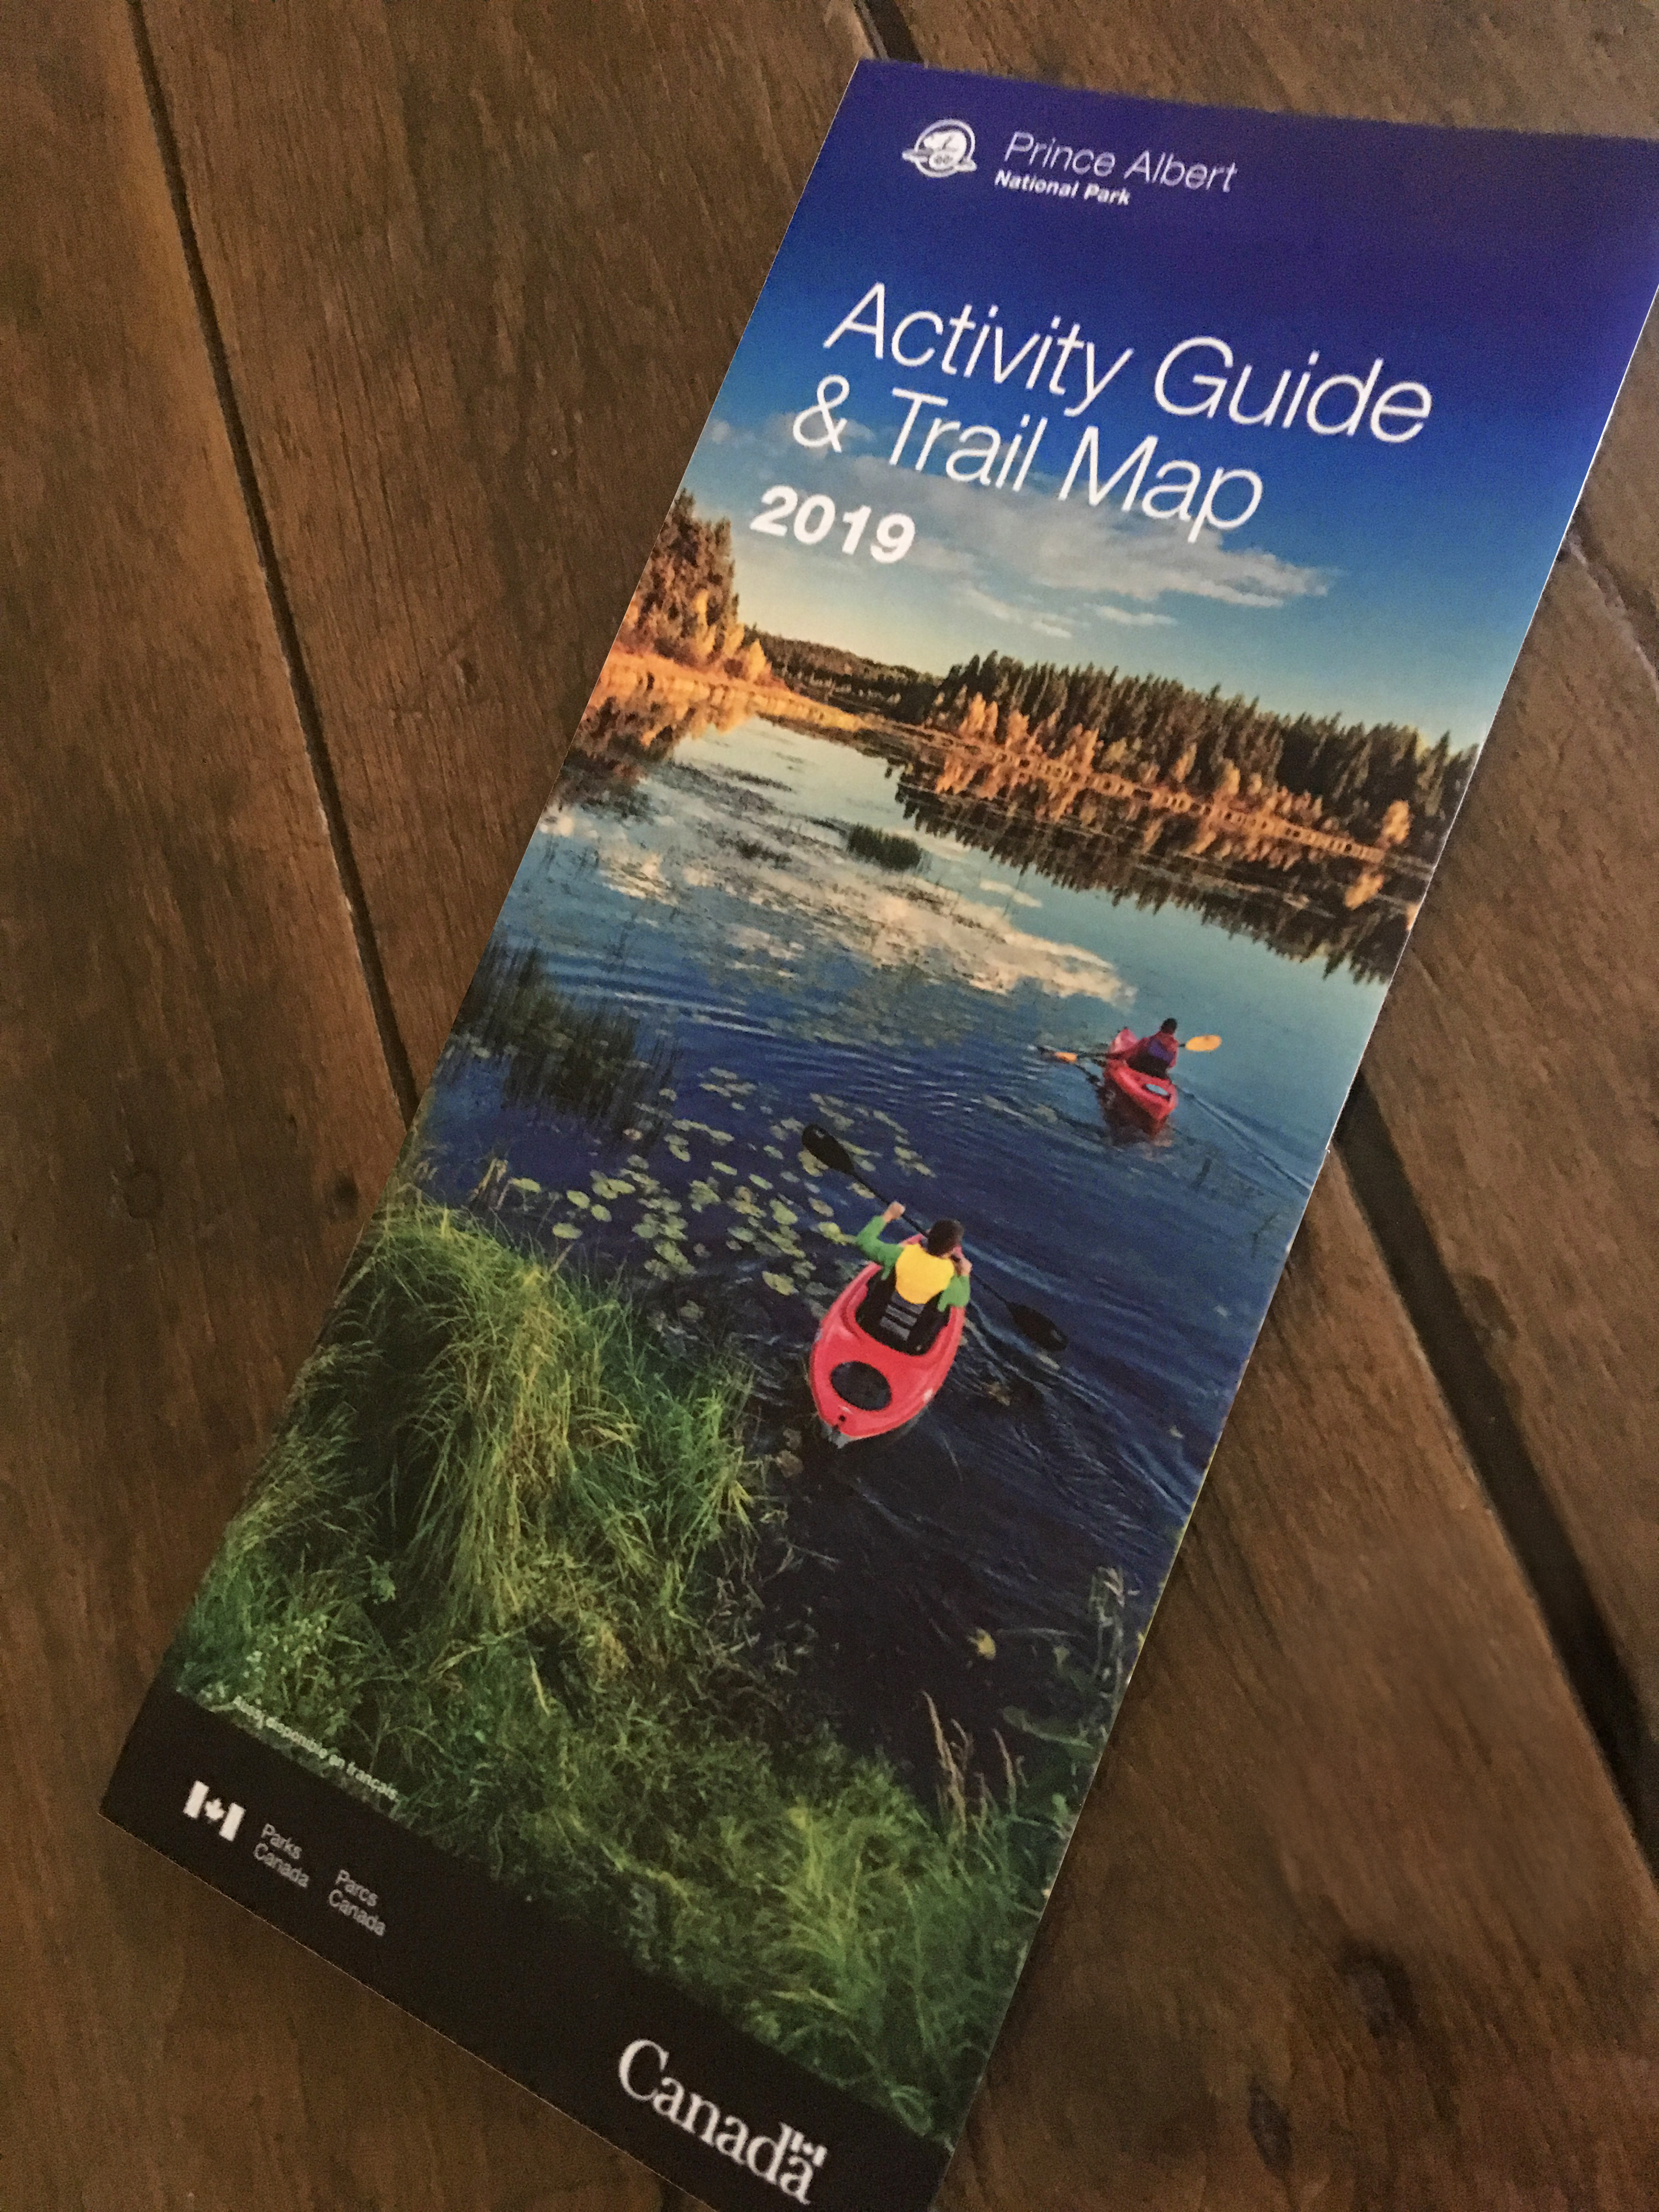 Parks Canada PANP Activity Guide